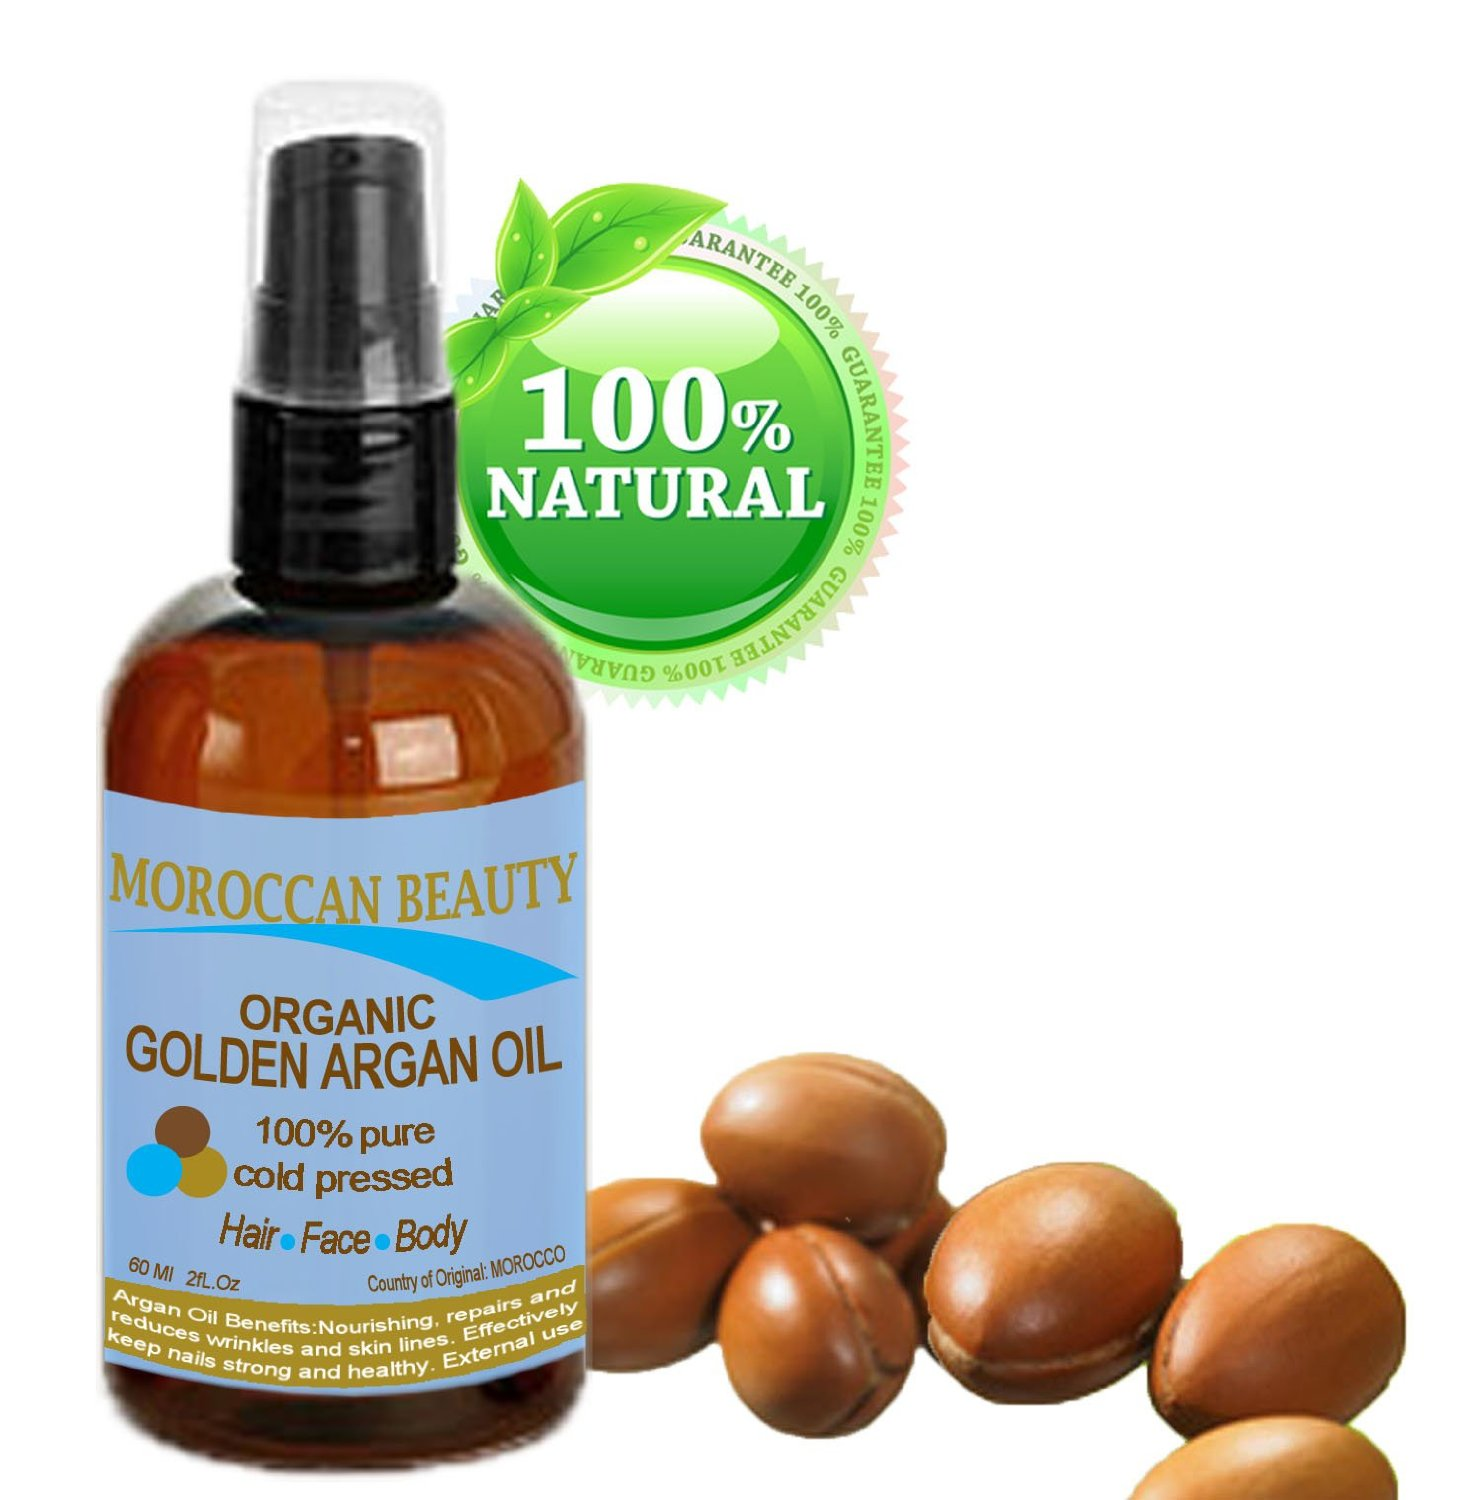 Botanical Beauty Moroccan Beauty GOLDEN ARGAN OIL, 100% Pure/ Natural, Organic. For Face, Hair, Nails And Body. 4 oz-120 ml